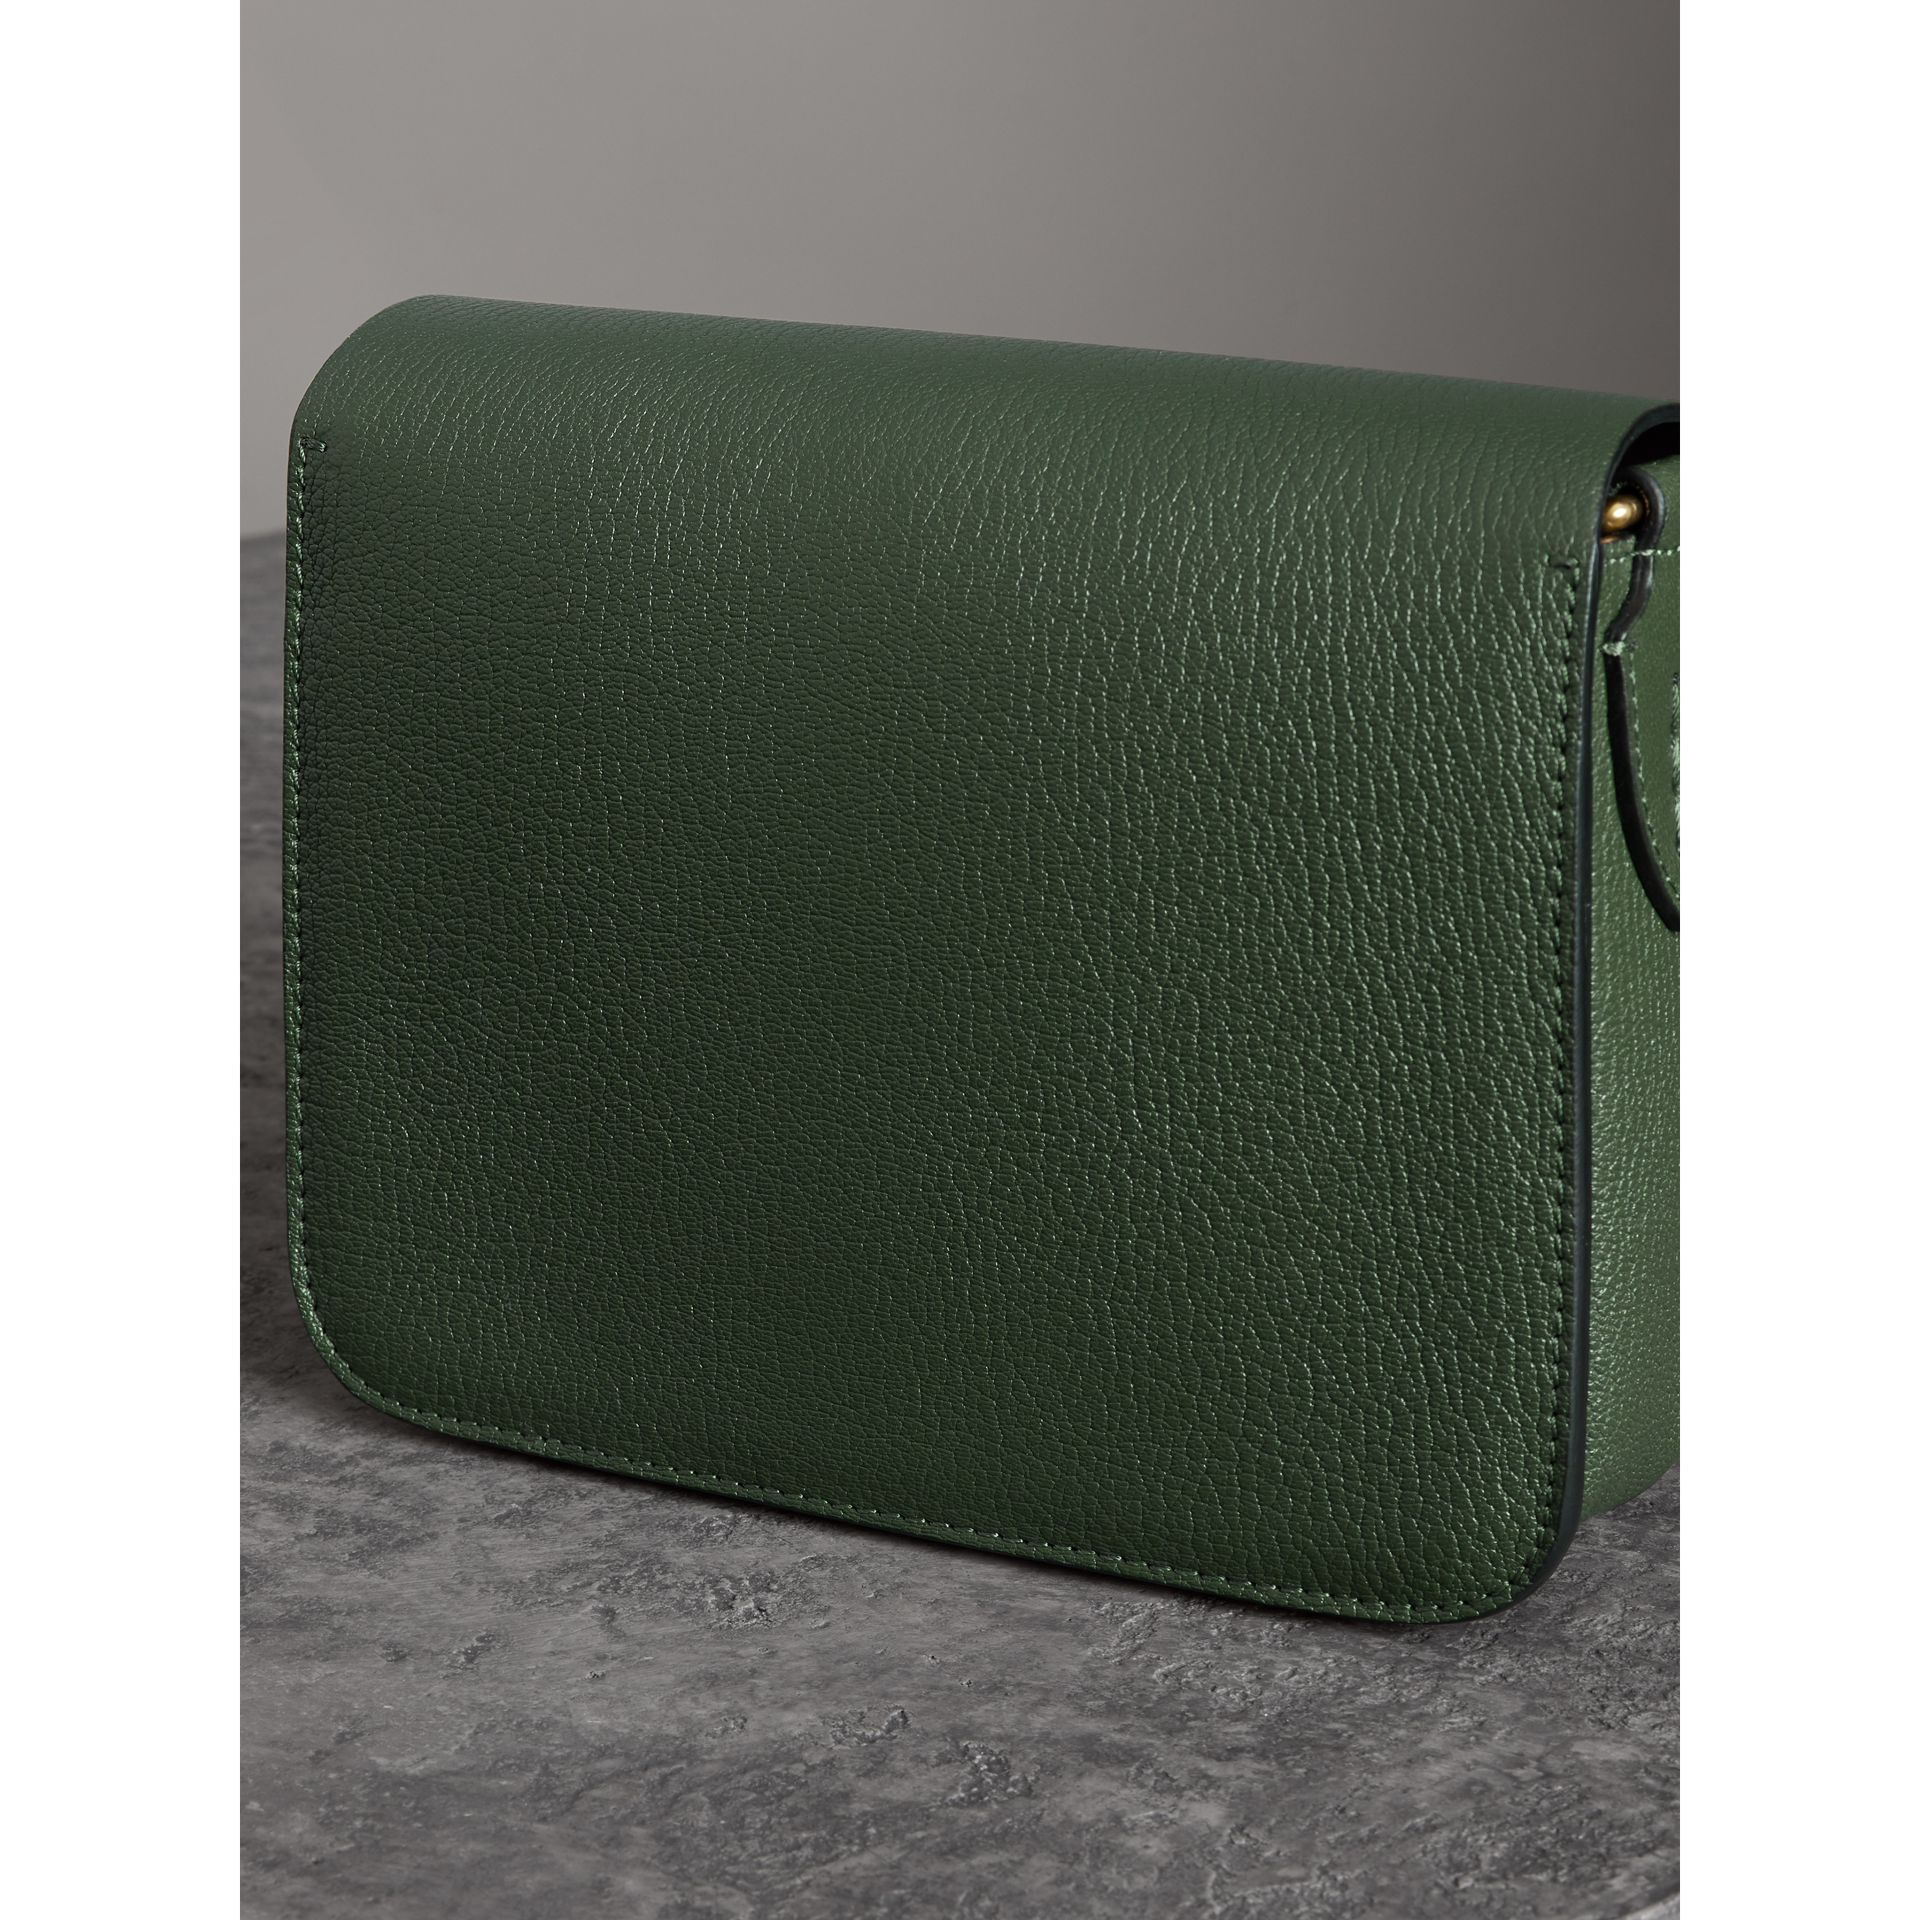 The Square Satchel in Leather in Dark Forest Green - Women | Burberry - gallery image 2